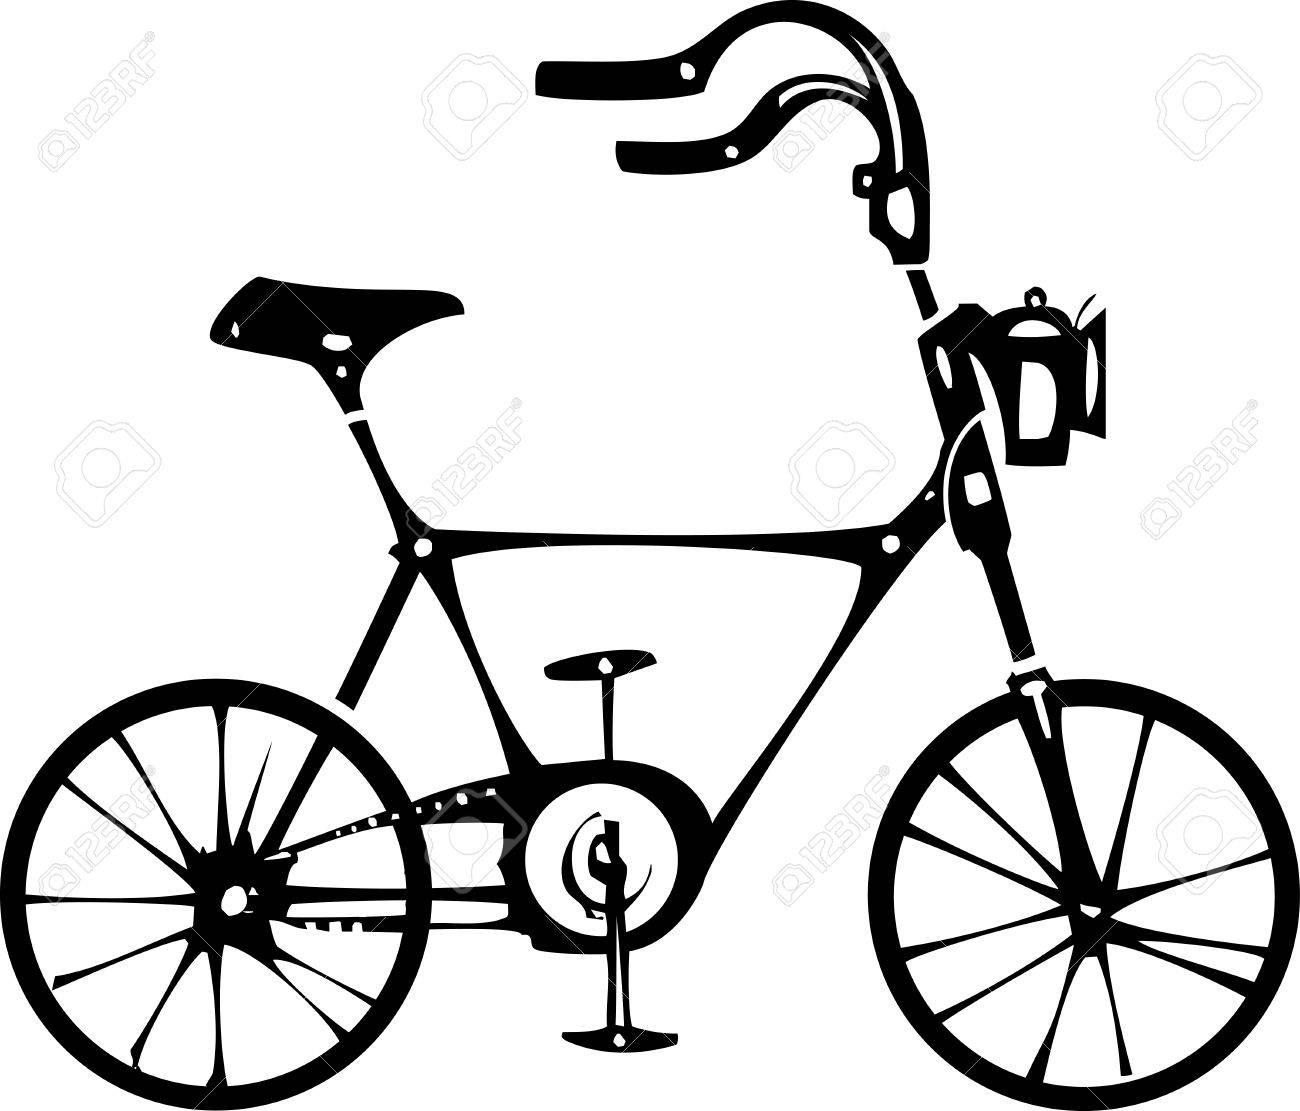 1300x1111 Simple Black And White Vintage Style Two Wheeled Bicycle Royalty